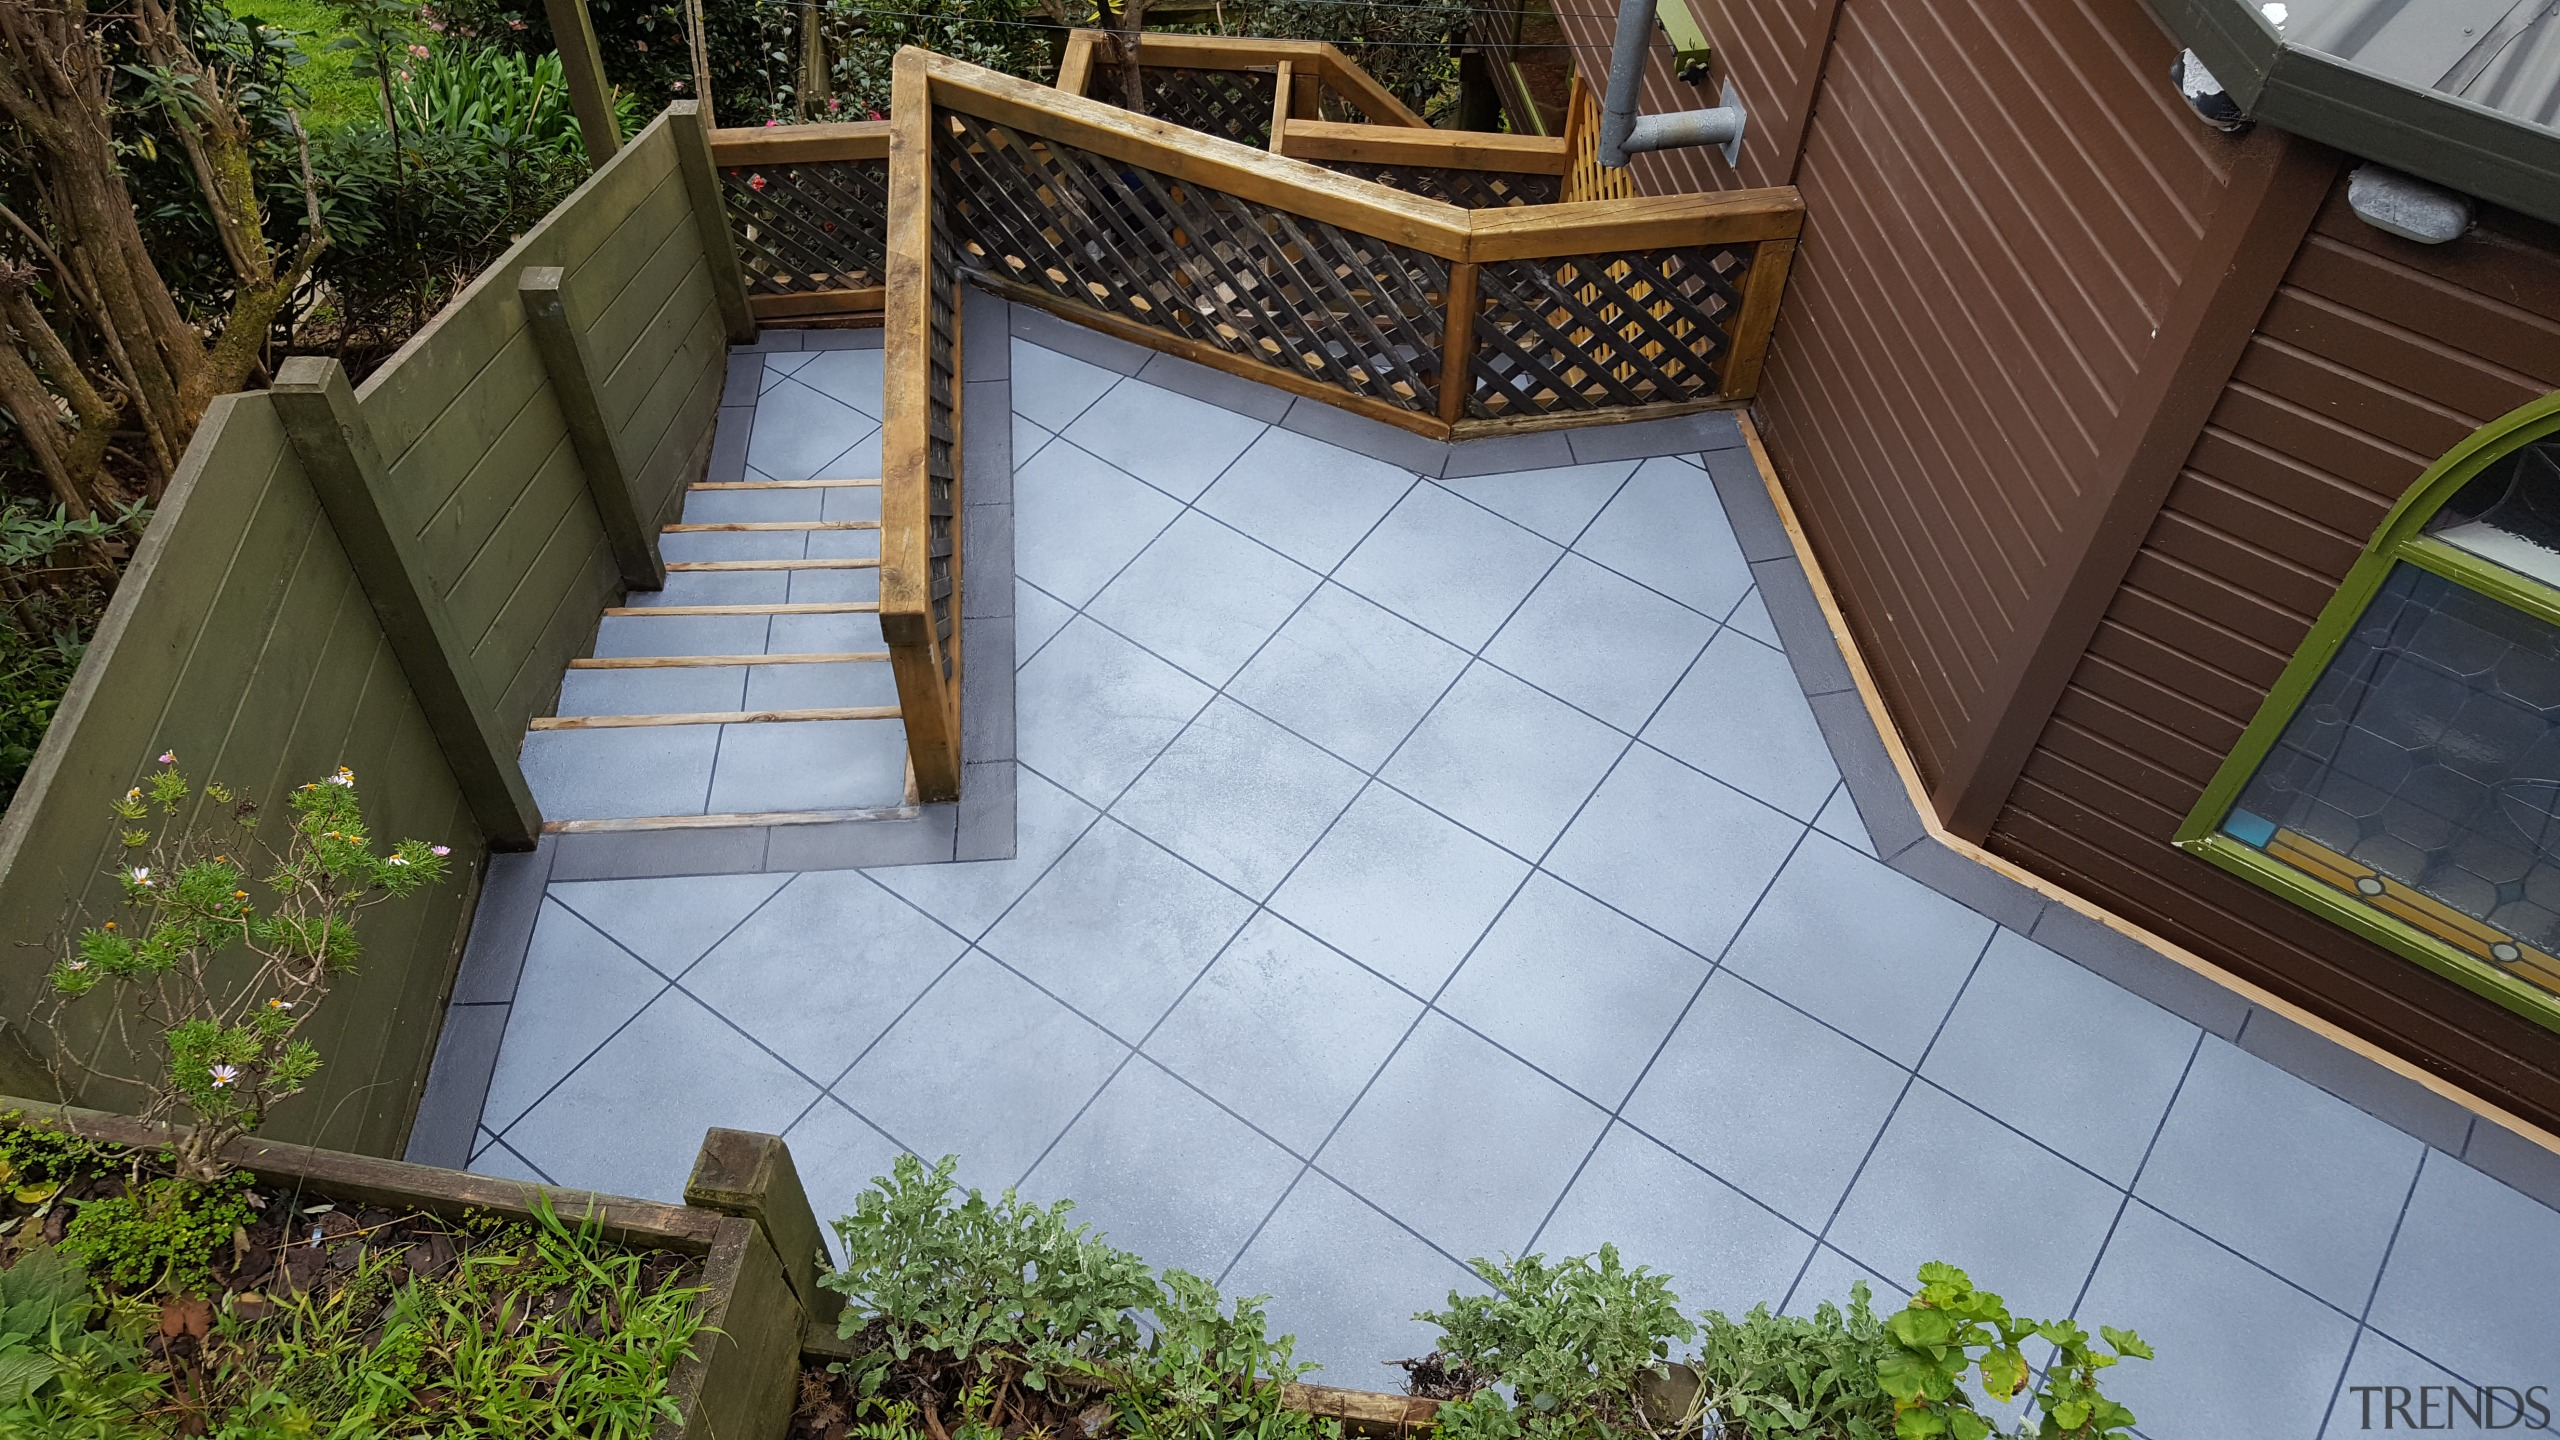 Permacolour Overlay offers an affordable, hassle-free solution to architecture, backyard, courtyard, deck, floor, handrail, house, outdoor structure, property, real estate, roof, walkway, wall, wood, yard, gray, brown